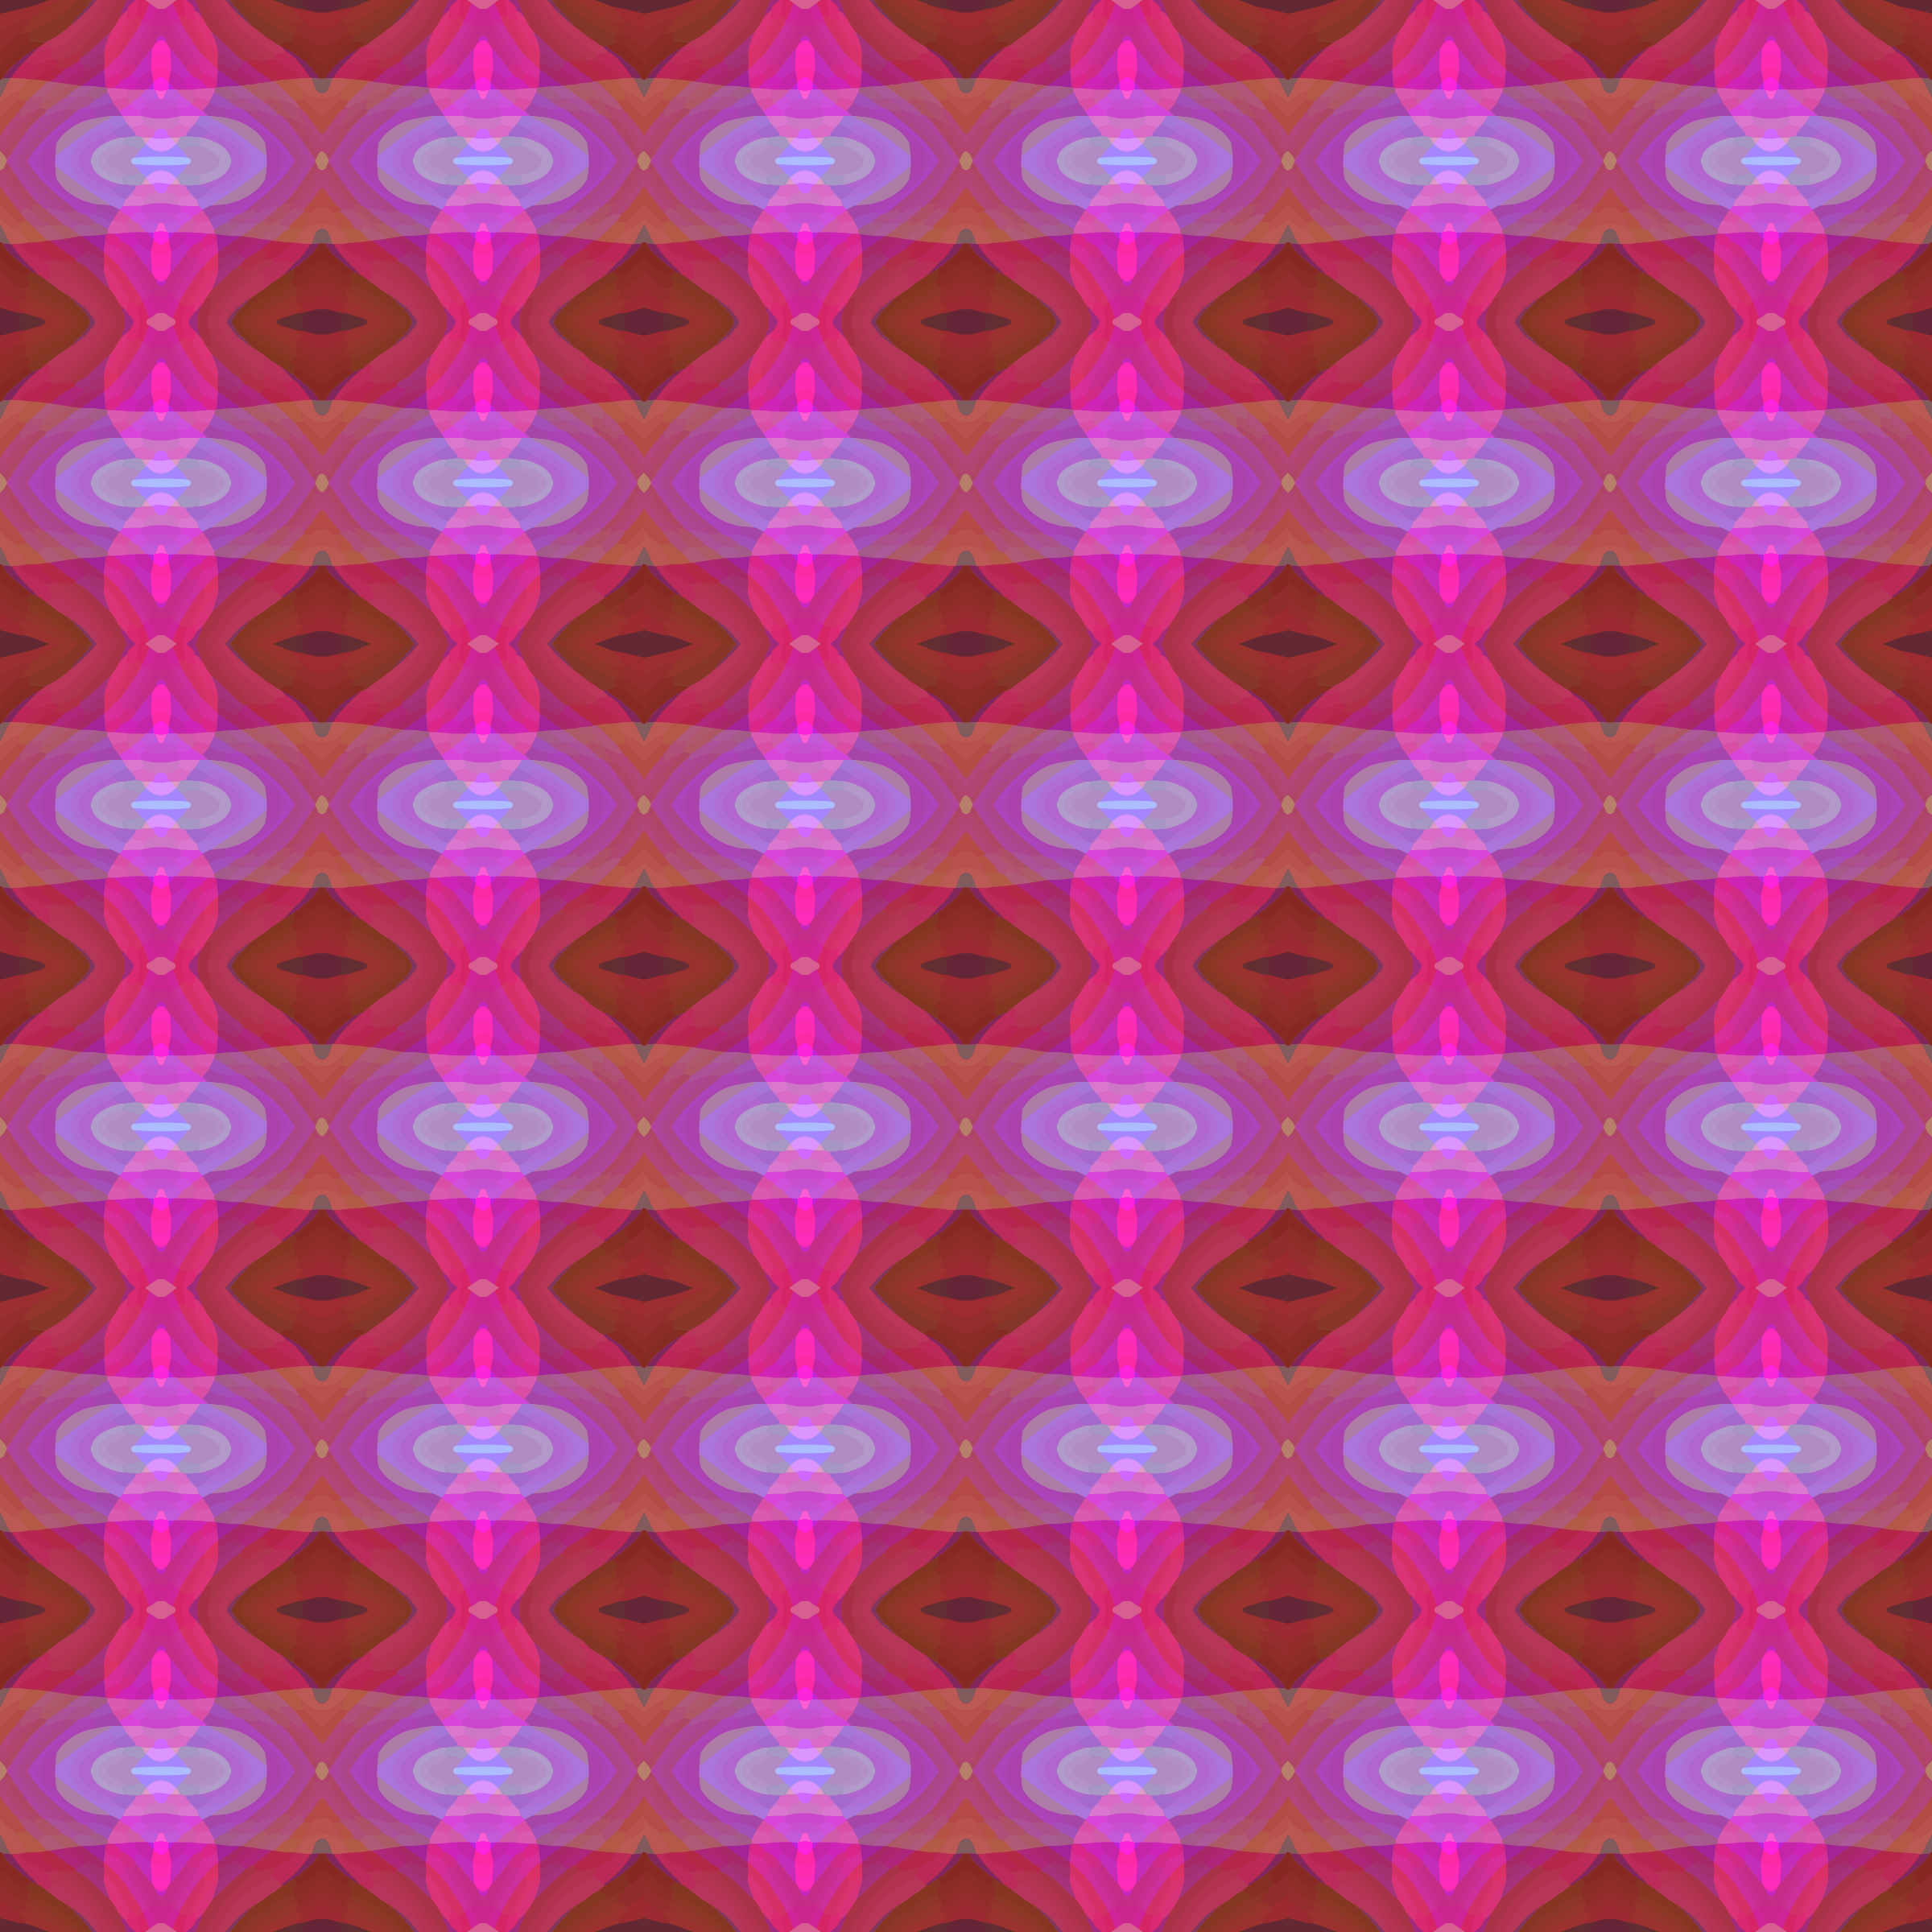 Background pattern 225 (colour 3) by Firkin